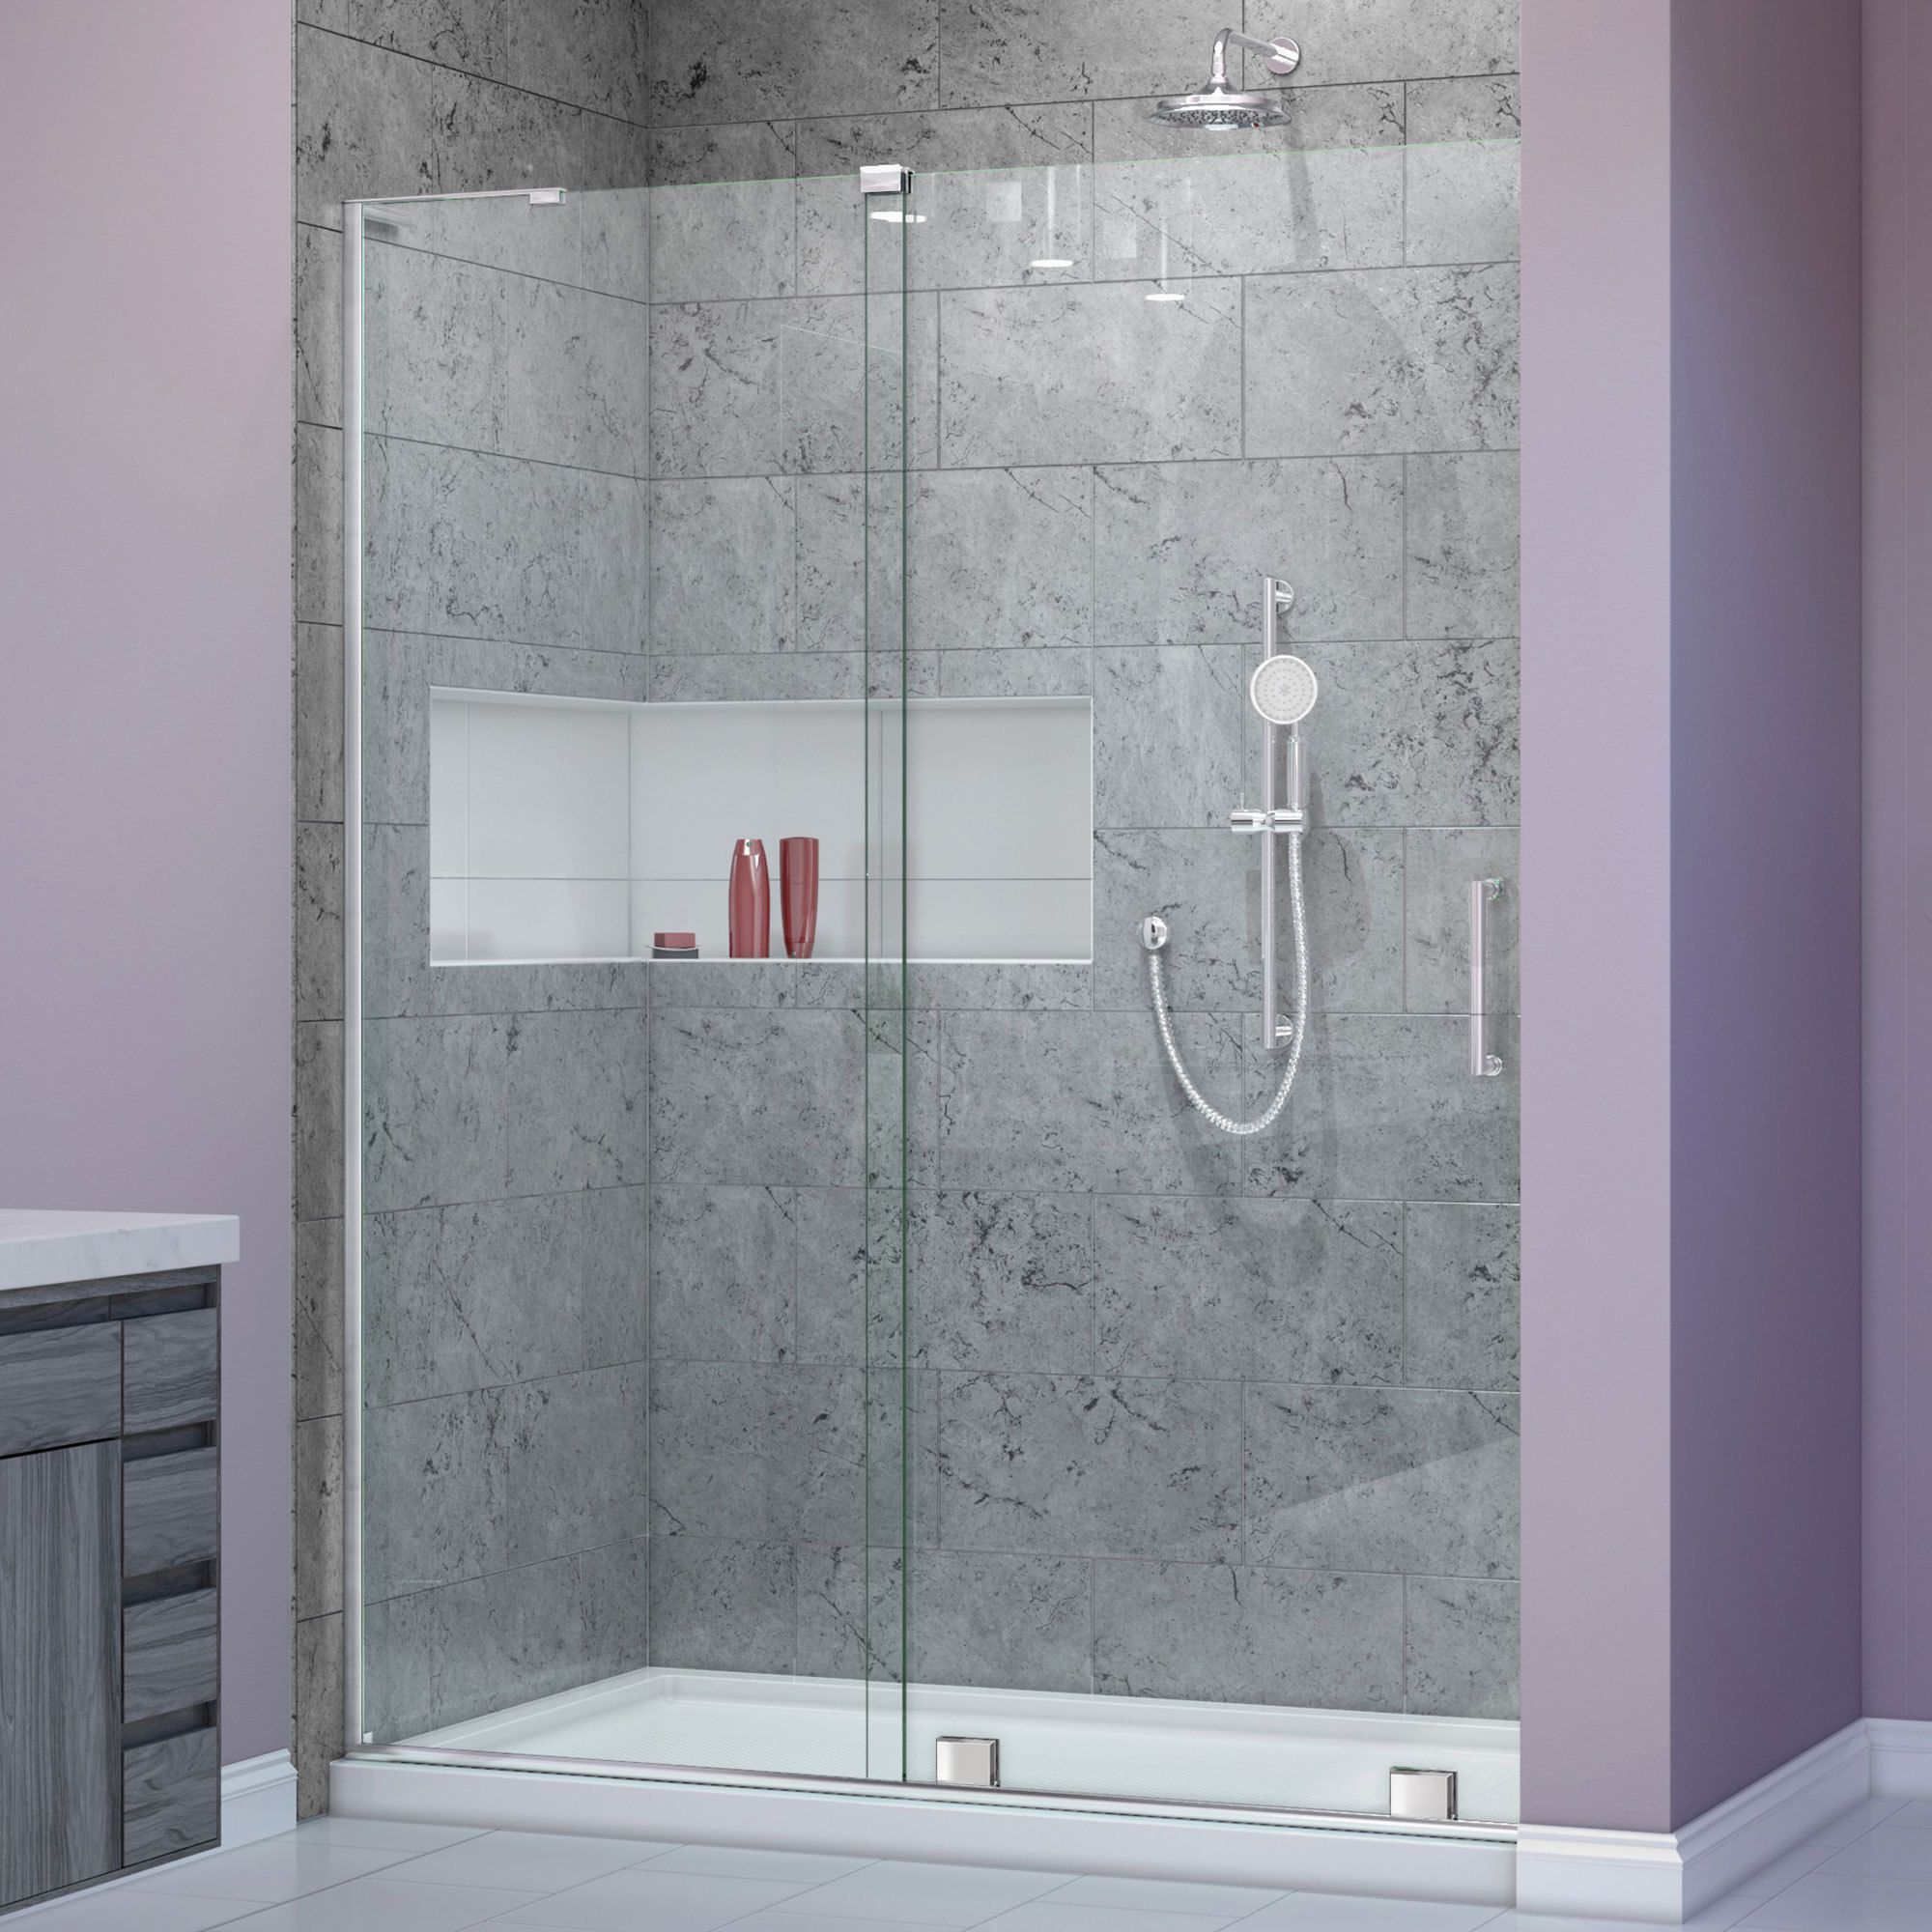 Dreamline Mirage X 44 48 In W X 72 In H Sliding Shower Door Brushed Nickel Right Wall Bracket Clear Products Shower Doors Frameless Sliding Shower Doors Frameless Shower Doors